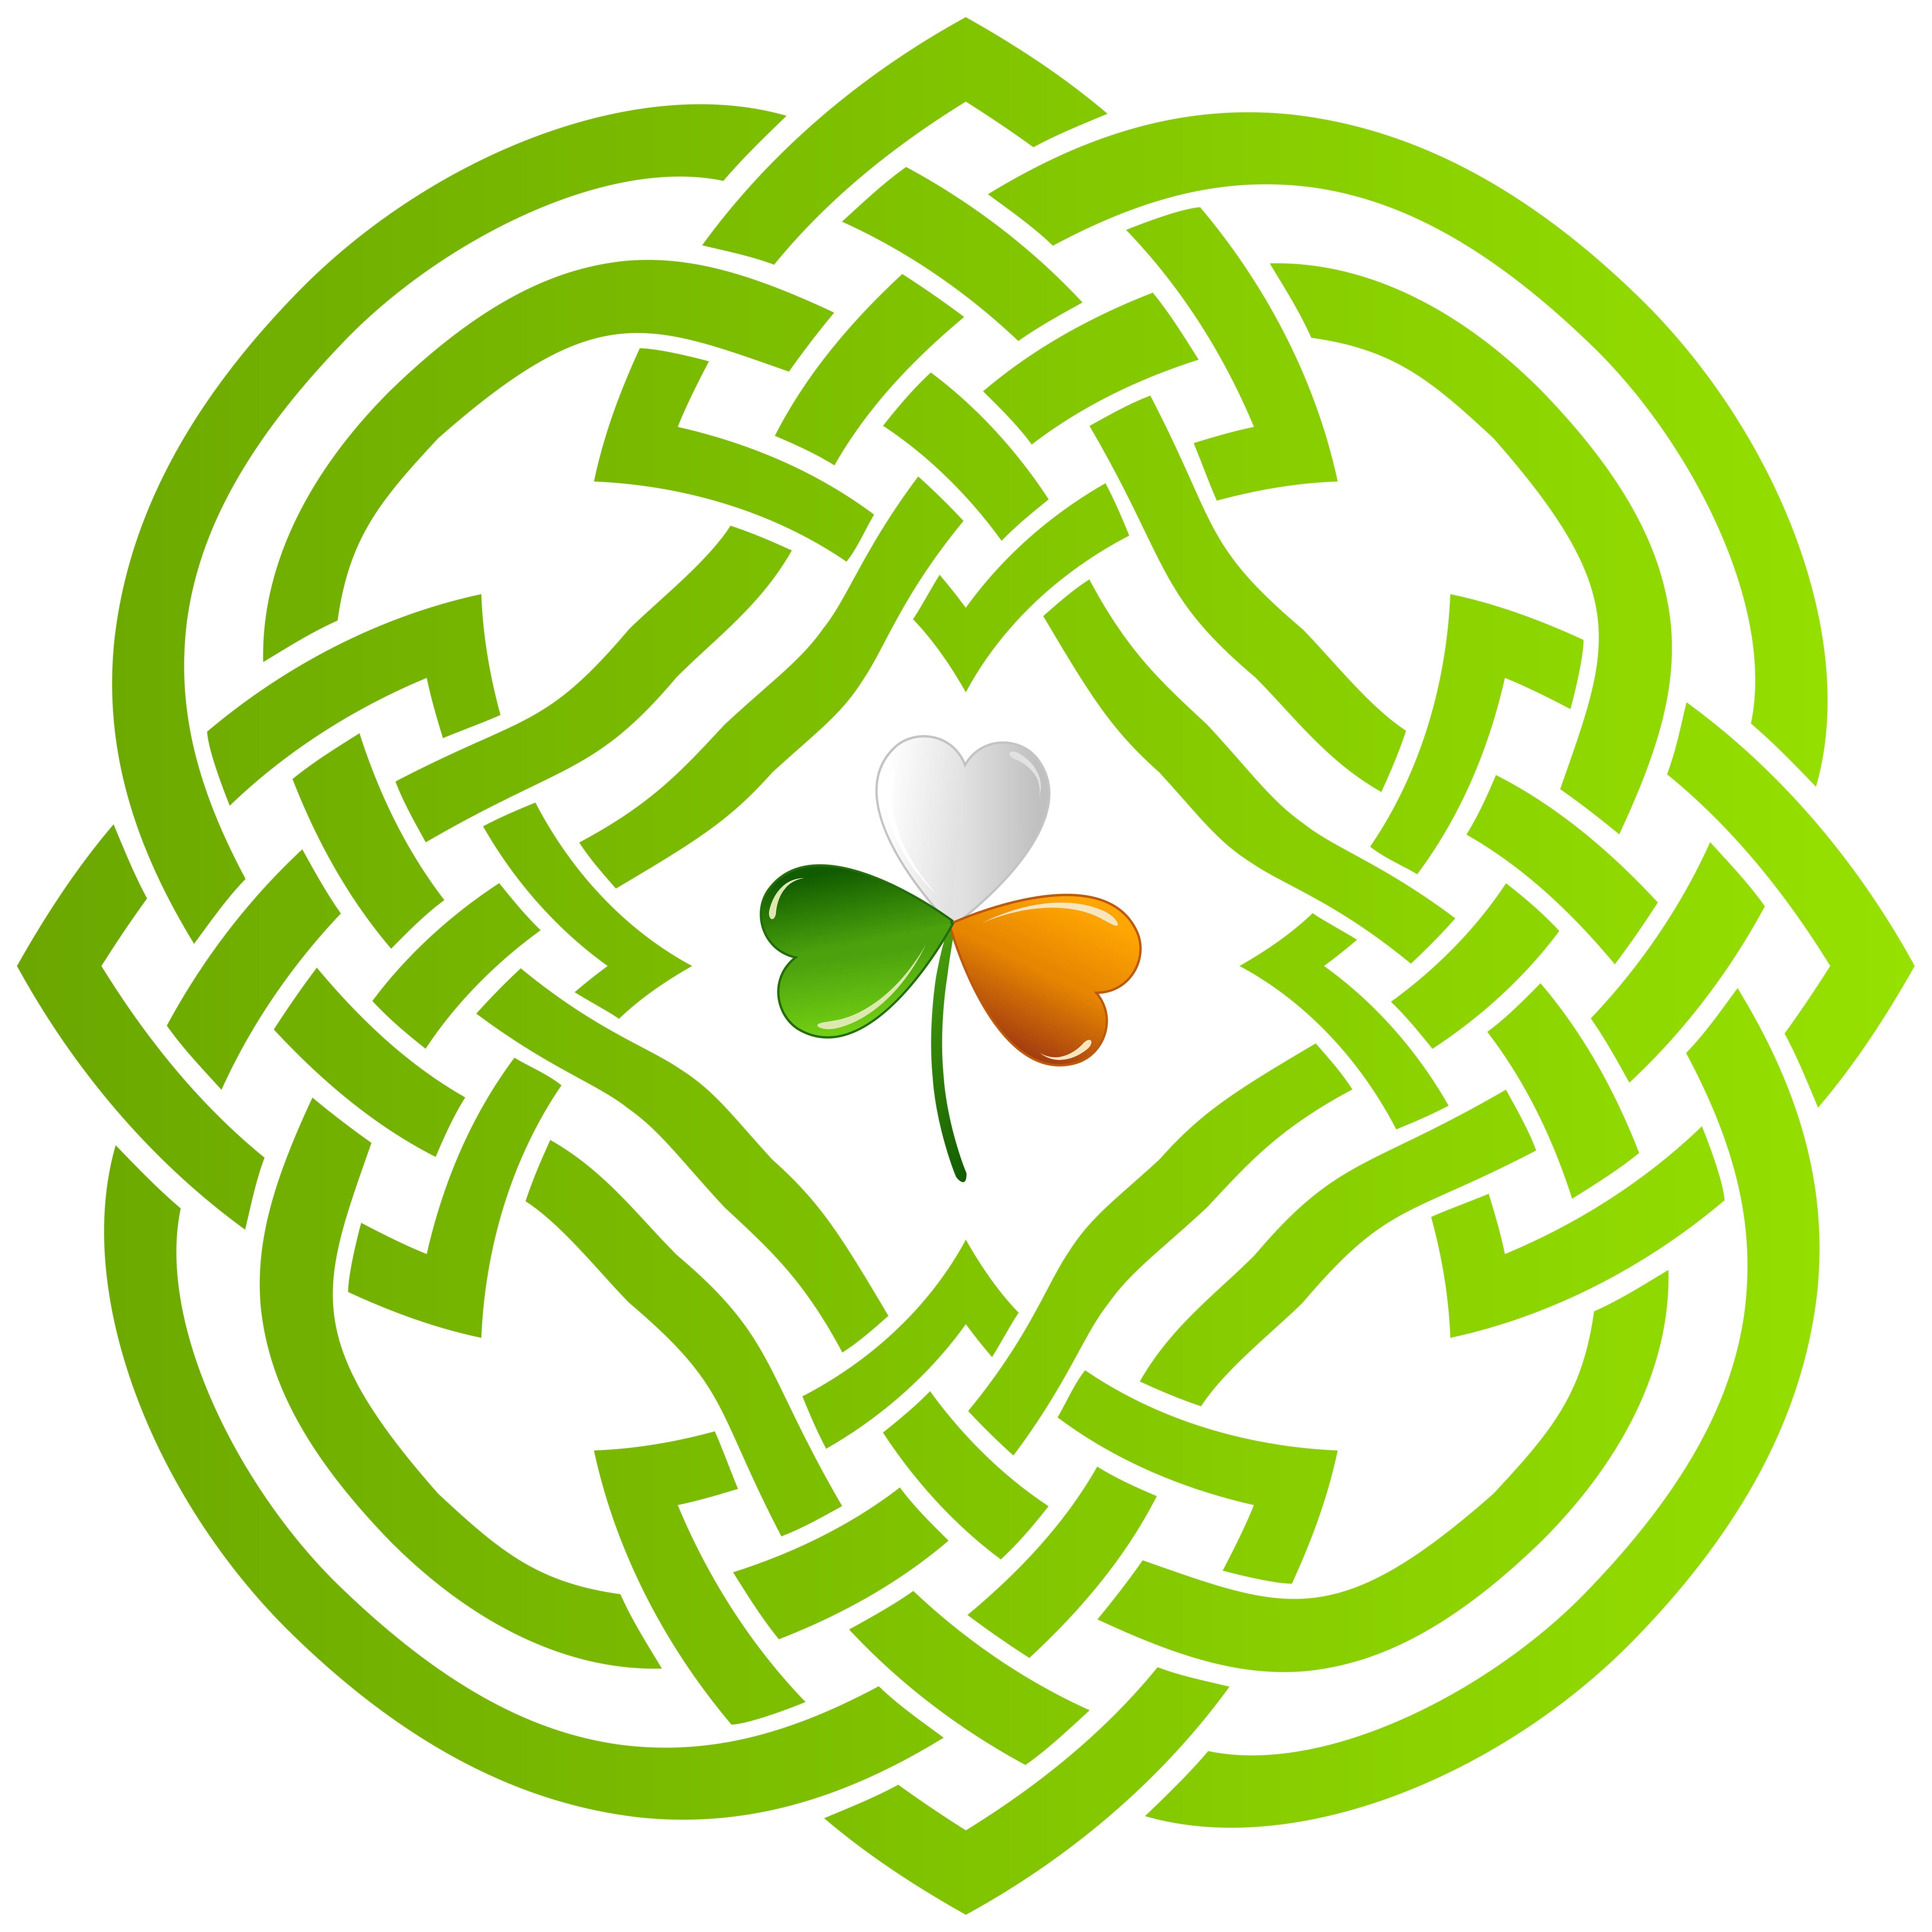 Celtic heart knot clipart picture freeuse stock Celtic Knot and Irish Shamrock Transparent PNG Clip Art Image ... picture freeuse stock